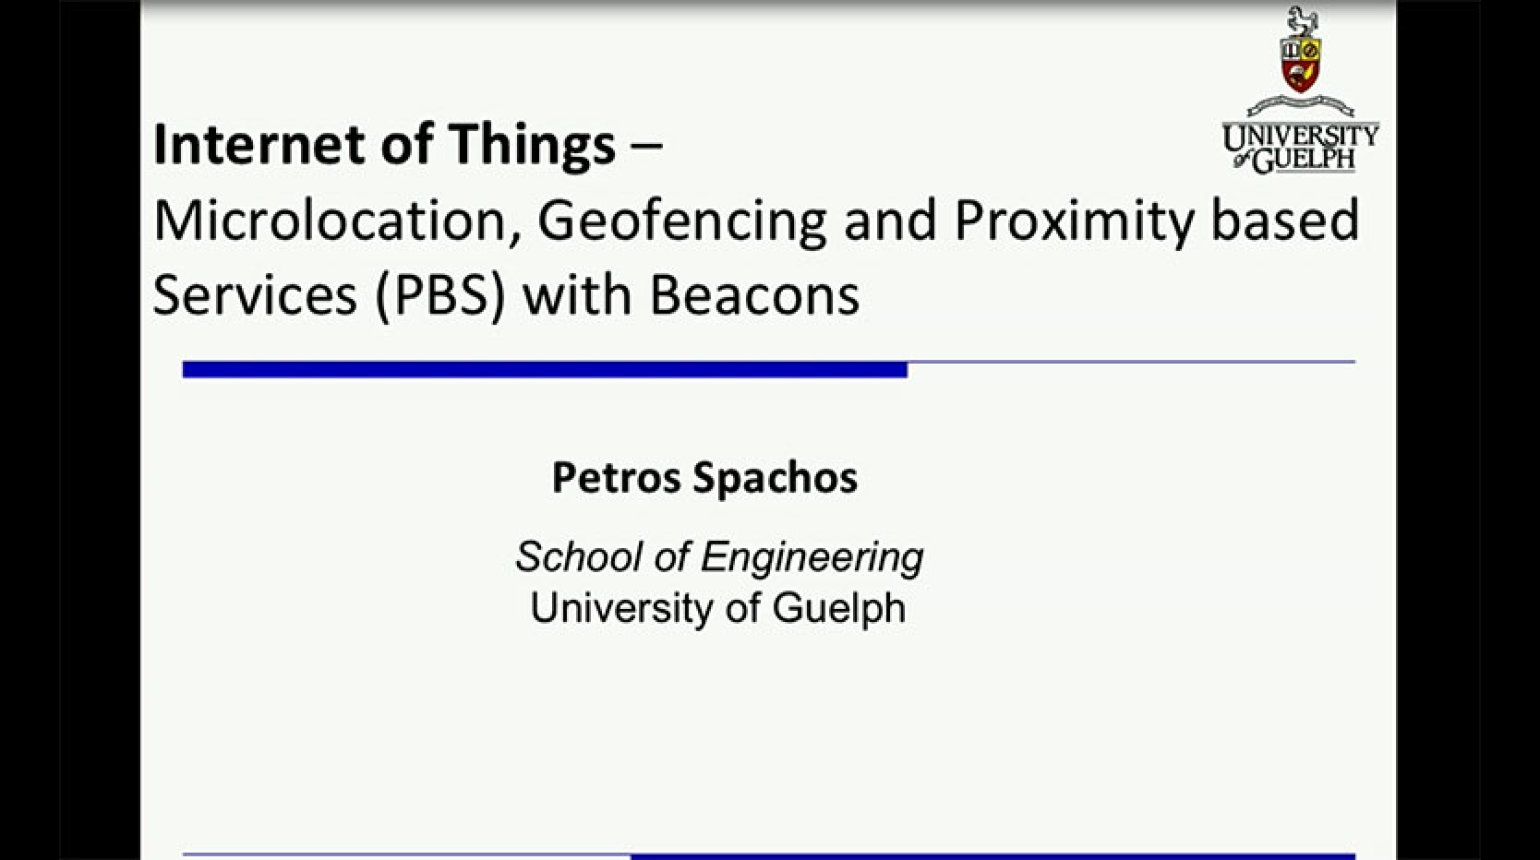 IEEE GlobalSIP 2017 Tutorial: IoT, Microlocation, Geofencing and Proximity based Services (PBS) with Beacons